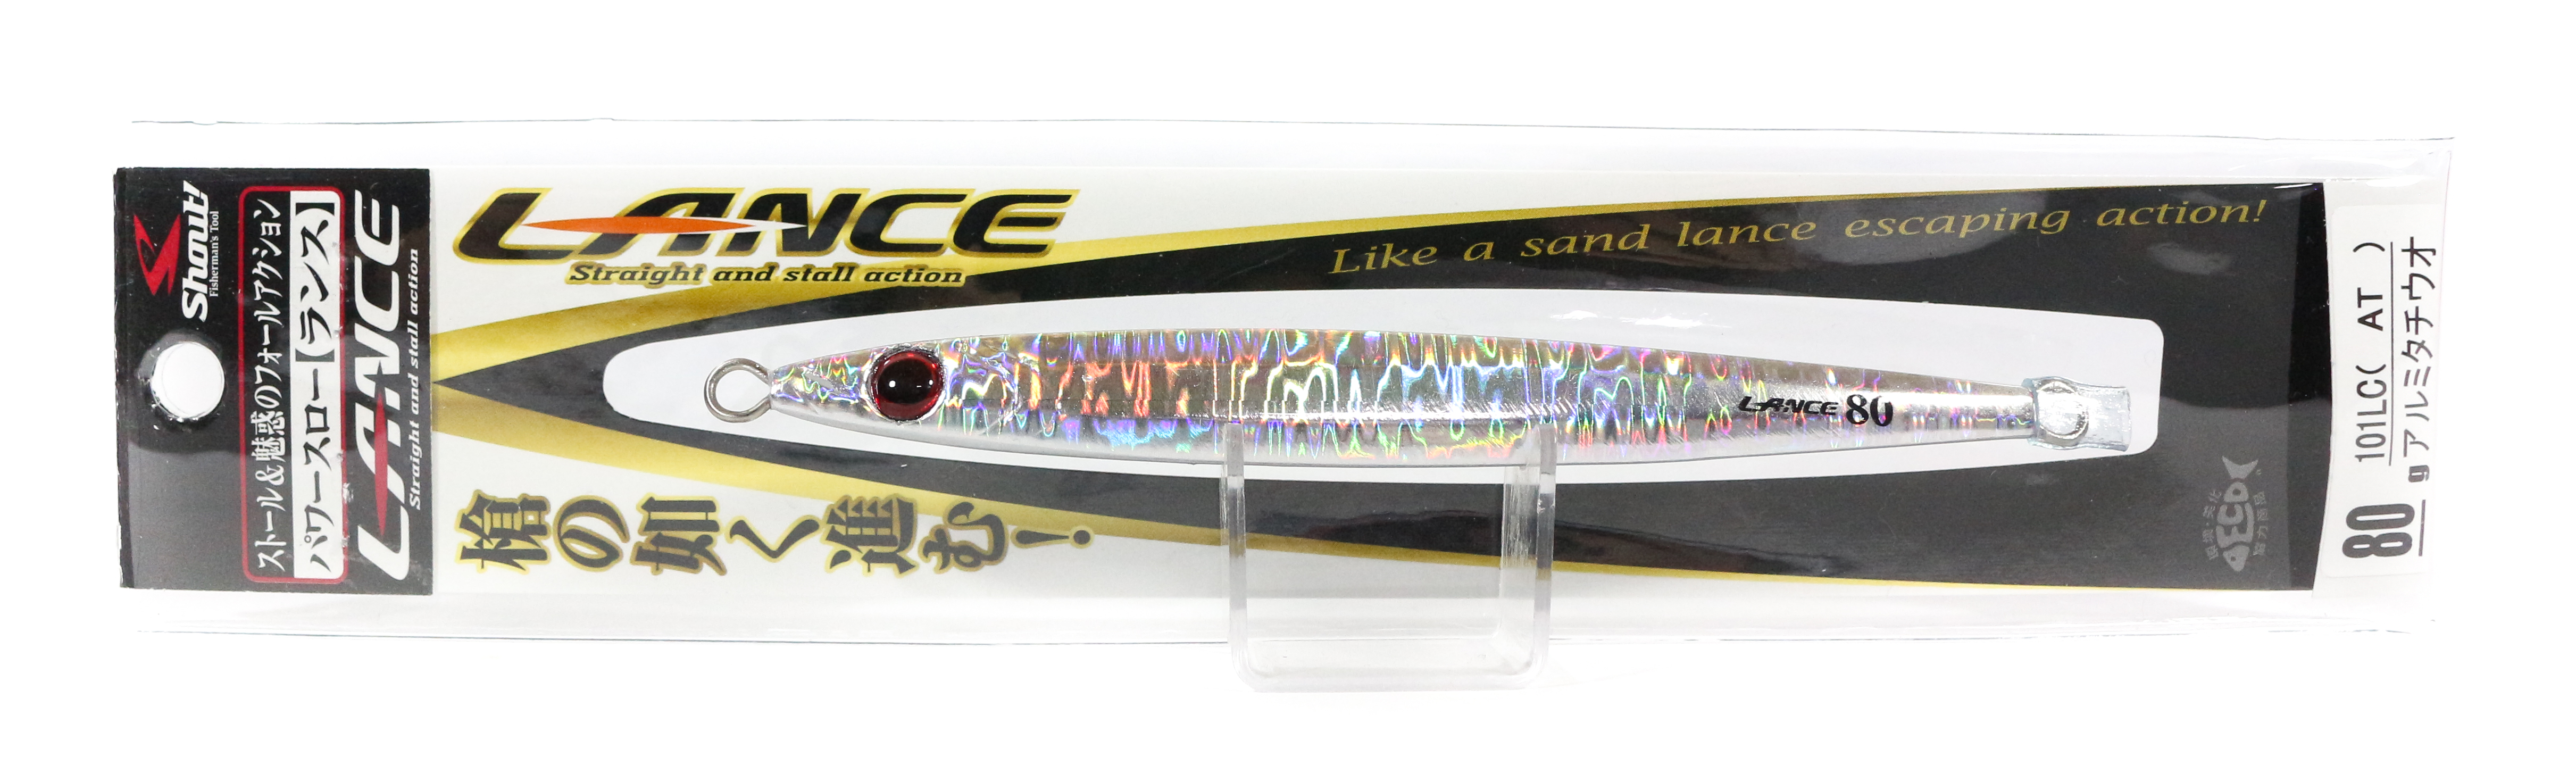 Shout 101-LC Metal Jig Lance Slow Fall Long 80 grams BH (6613)